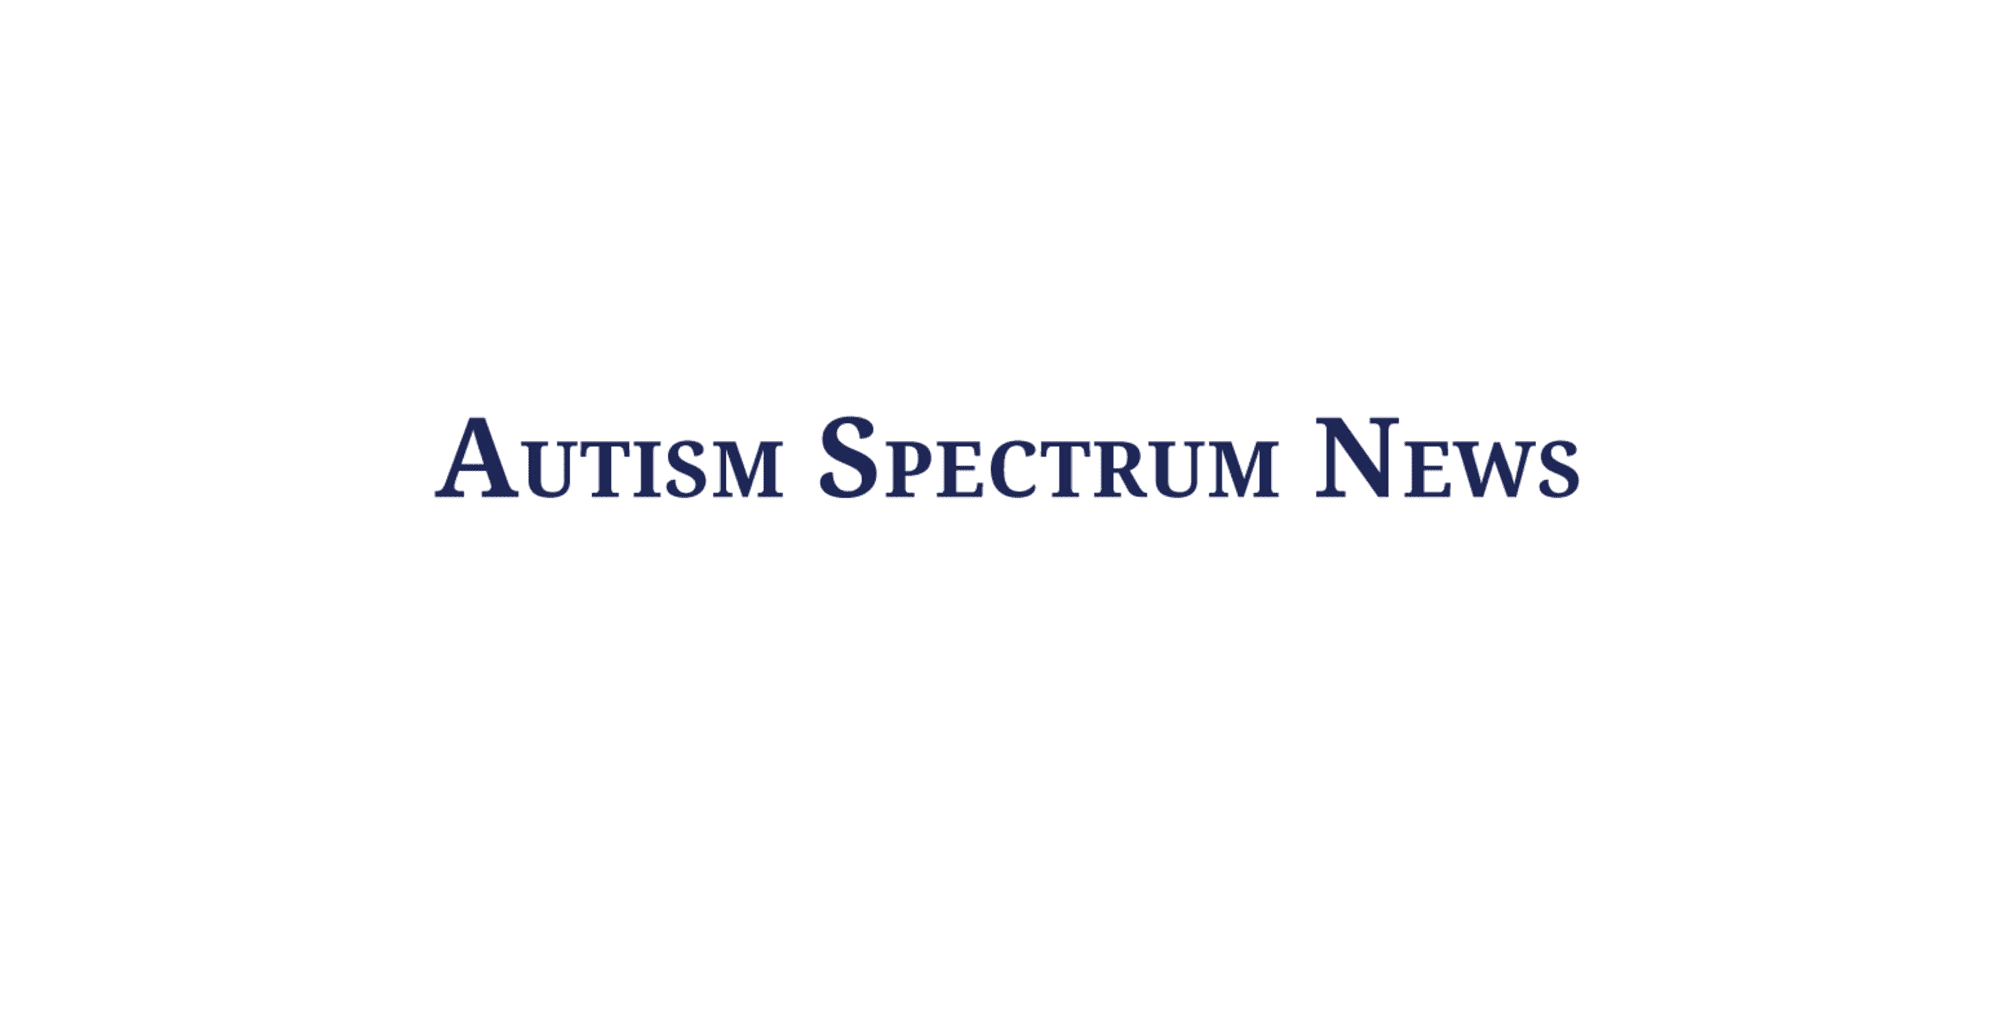 Autism Spectrum News